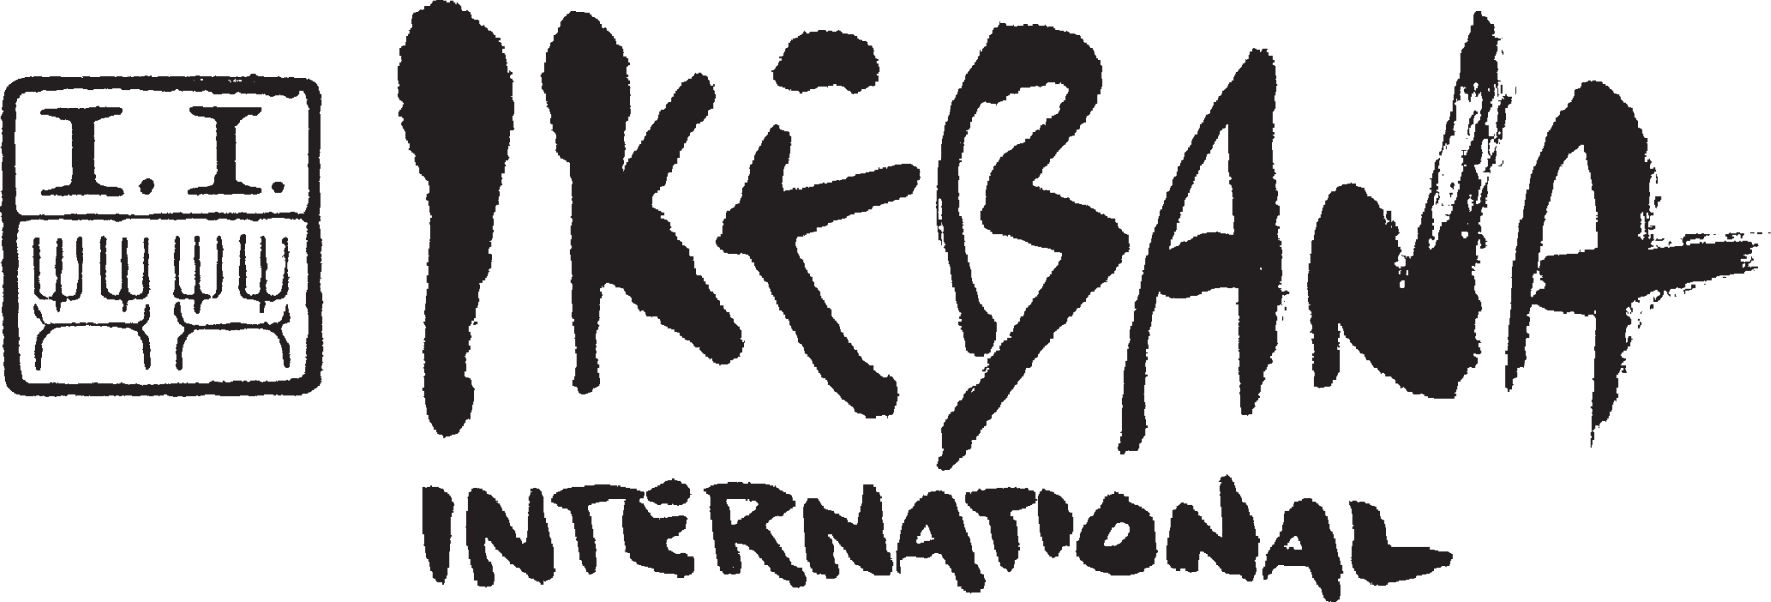 Ikebana International